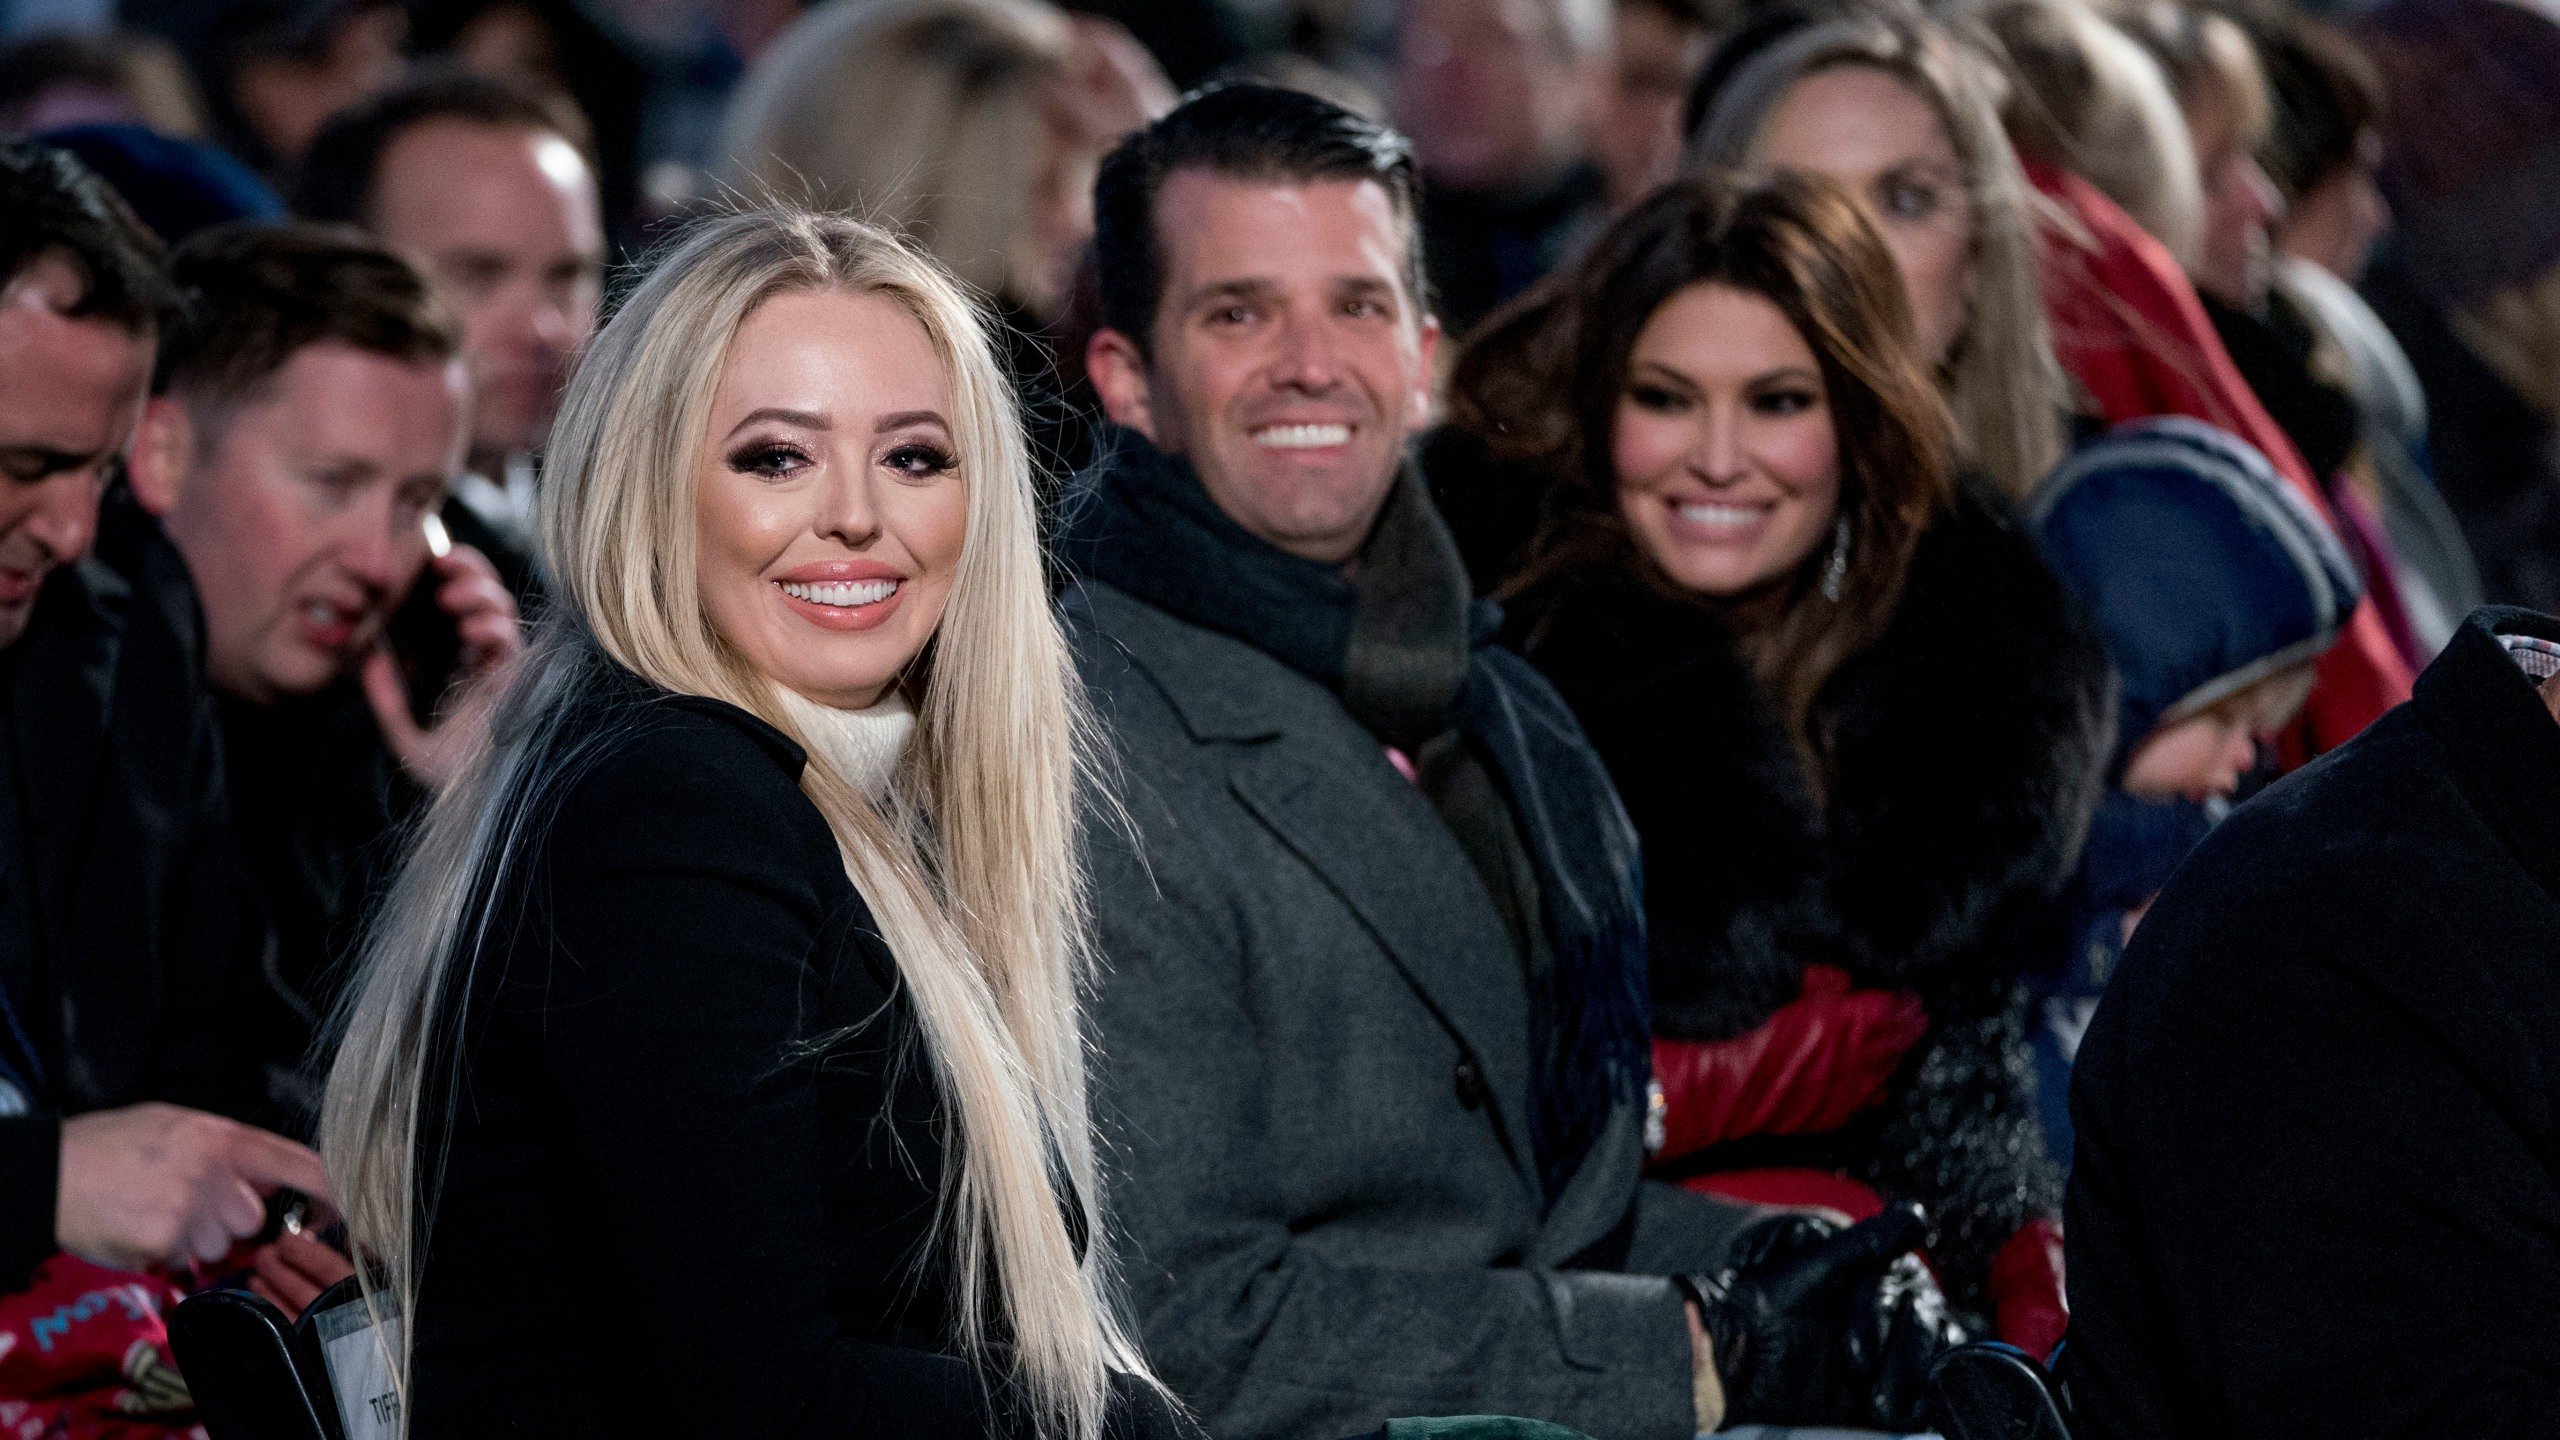 Donald Trump Jr., Kimberly Guilfoyle, Tiffany Trump